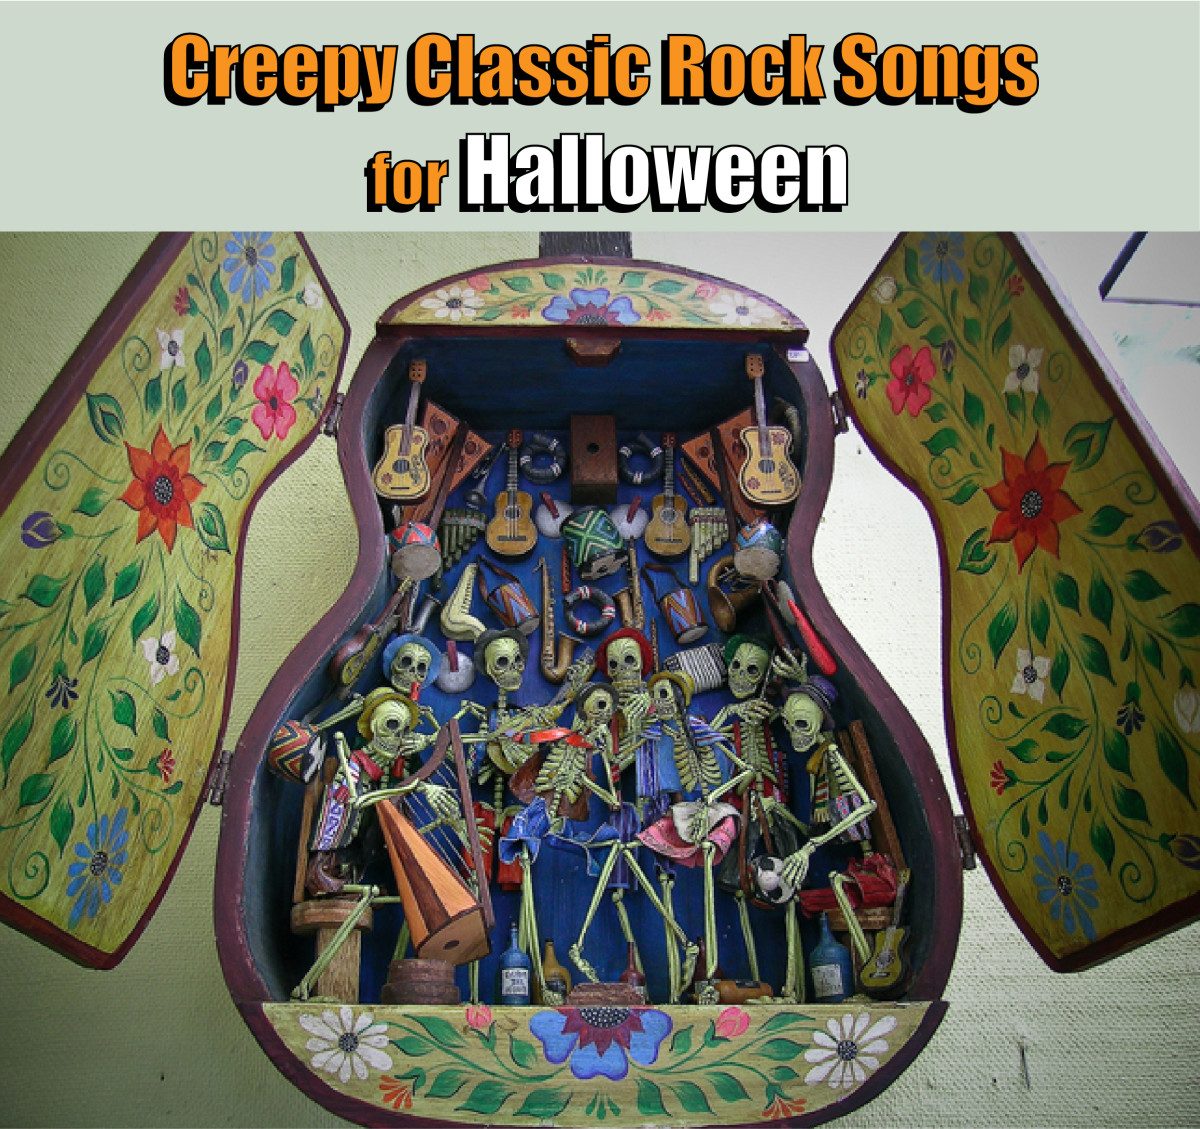 Nine Creepy Classic Rock Songs for Halloween